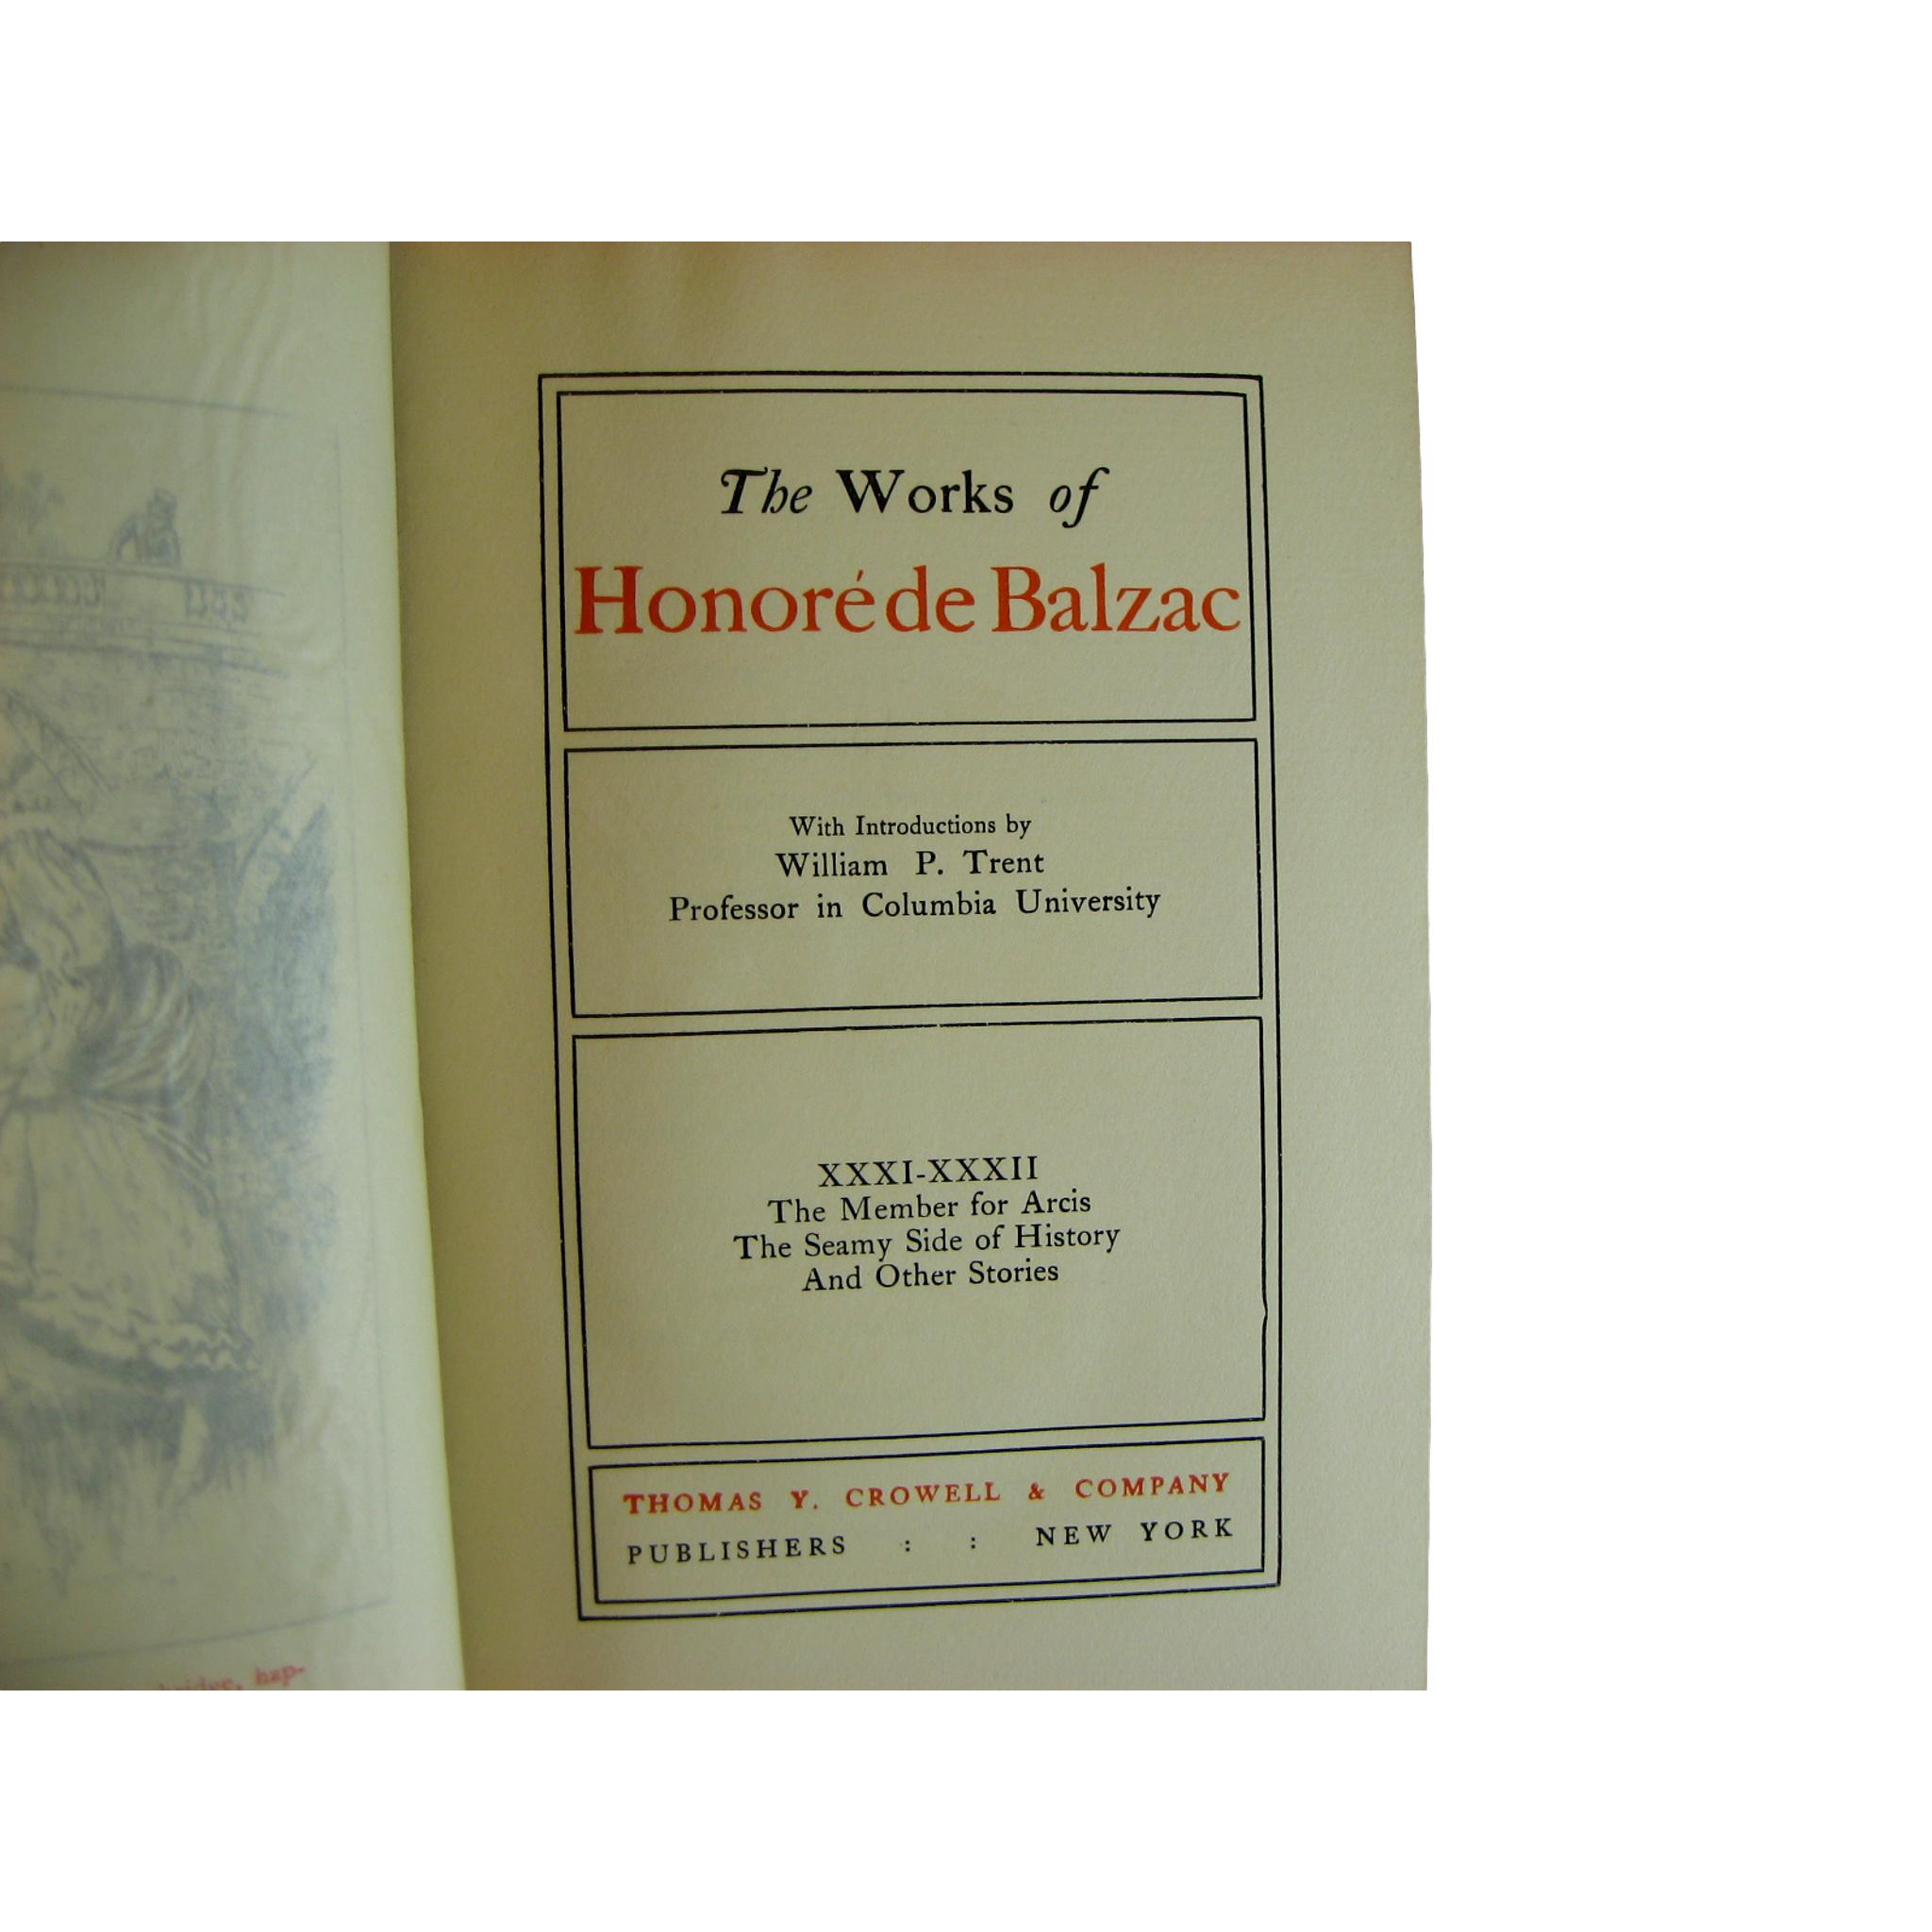 Decorative Books of the Antique Works of Honoré de Balzac, S/6 - Decades of Vintage